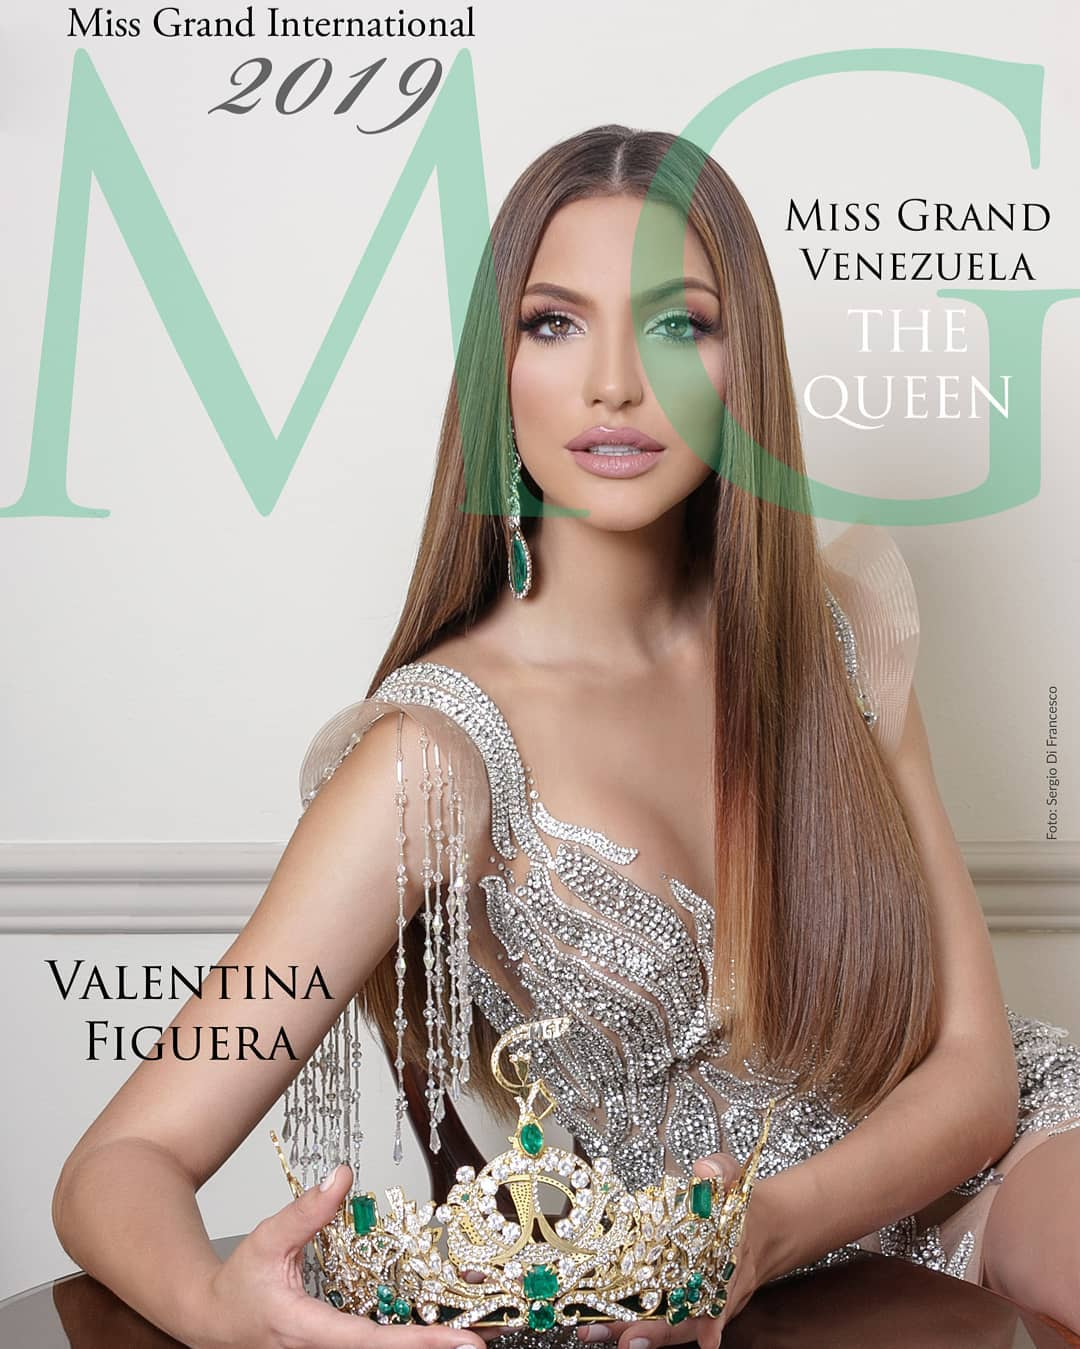 Official Thread of MISS GRAND INTERNATIONAL 2019 - Lourdes Valentina Figuera - VENEZUELA - Page 2 74799413-2632573343432312-5533784366955626496-o